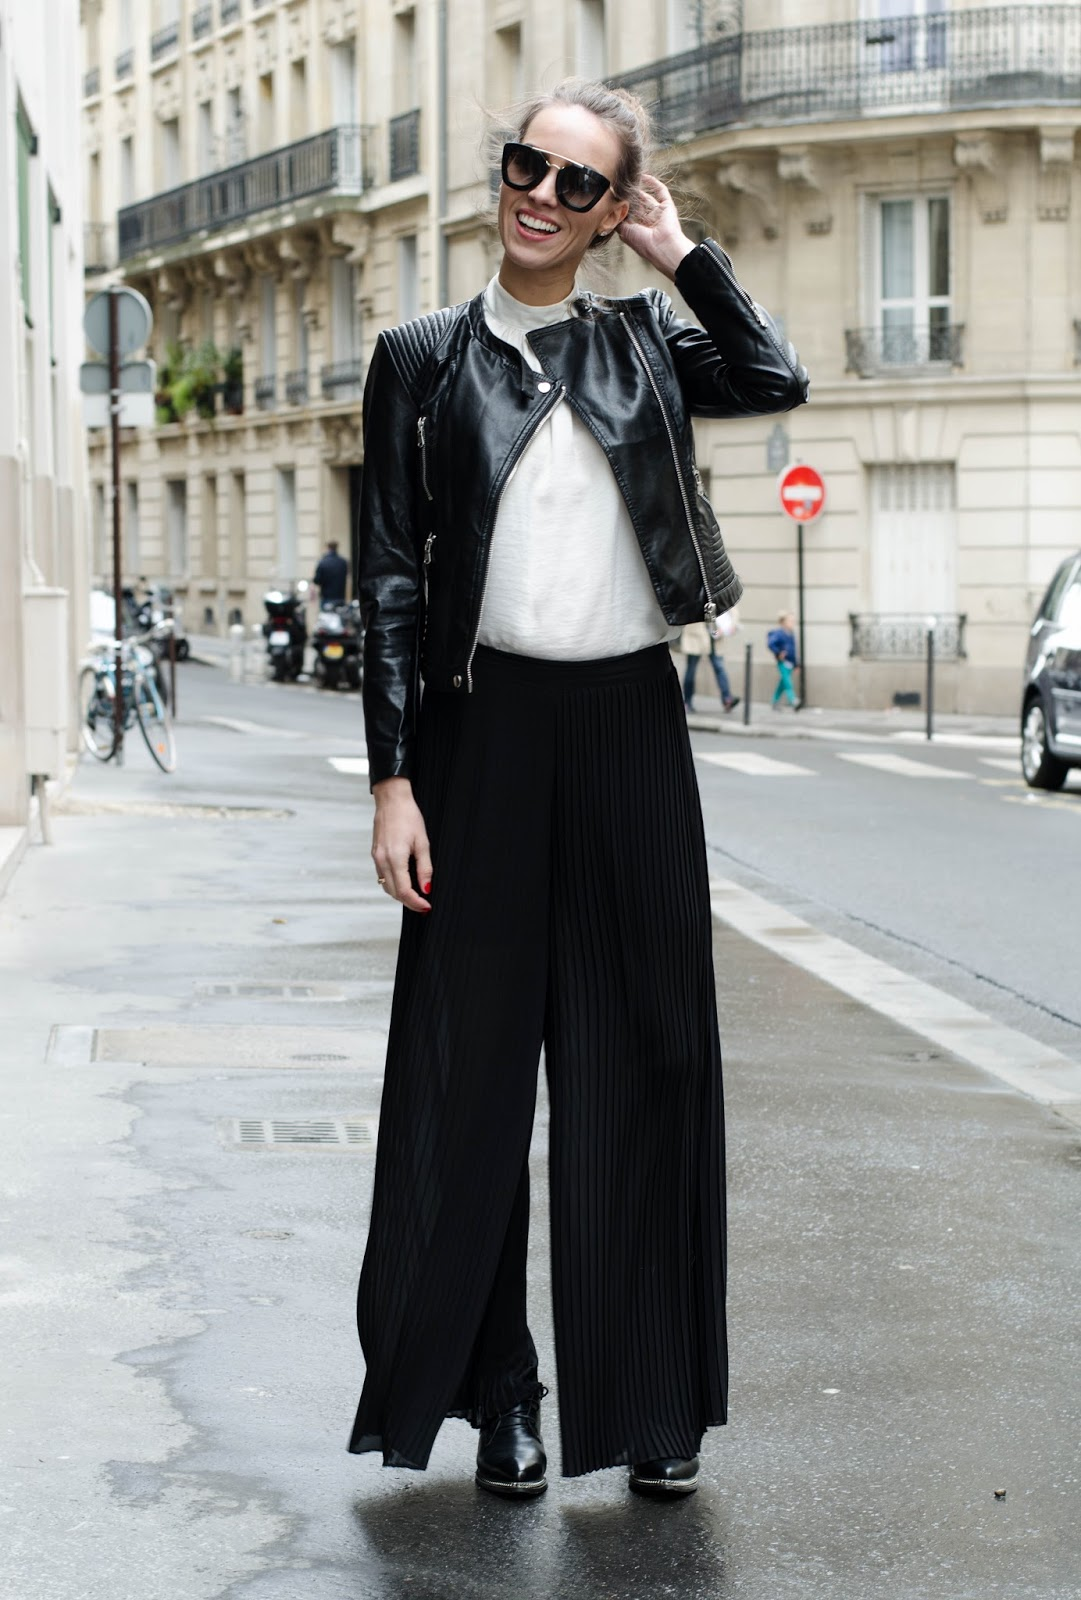 kristjaana mere black pleated pants spring outfit